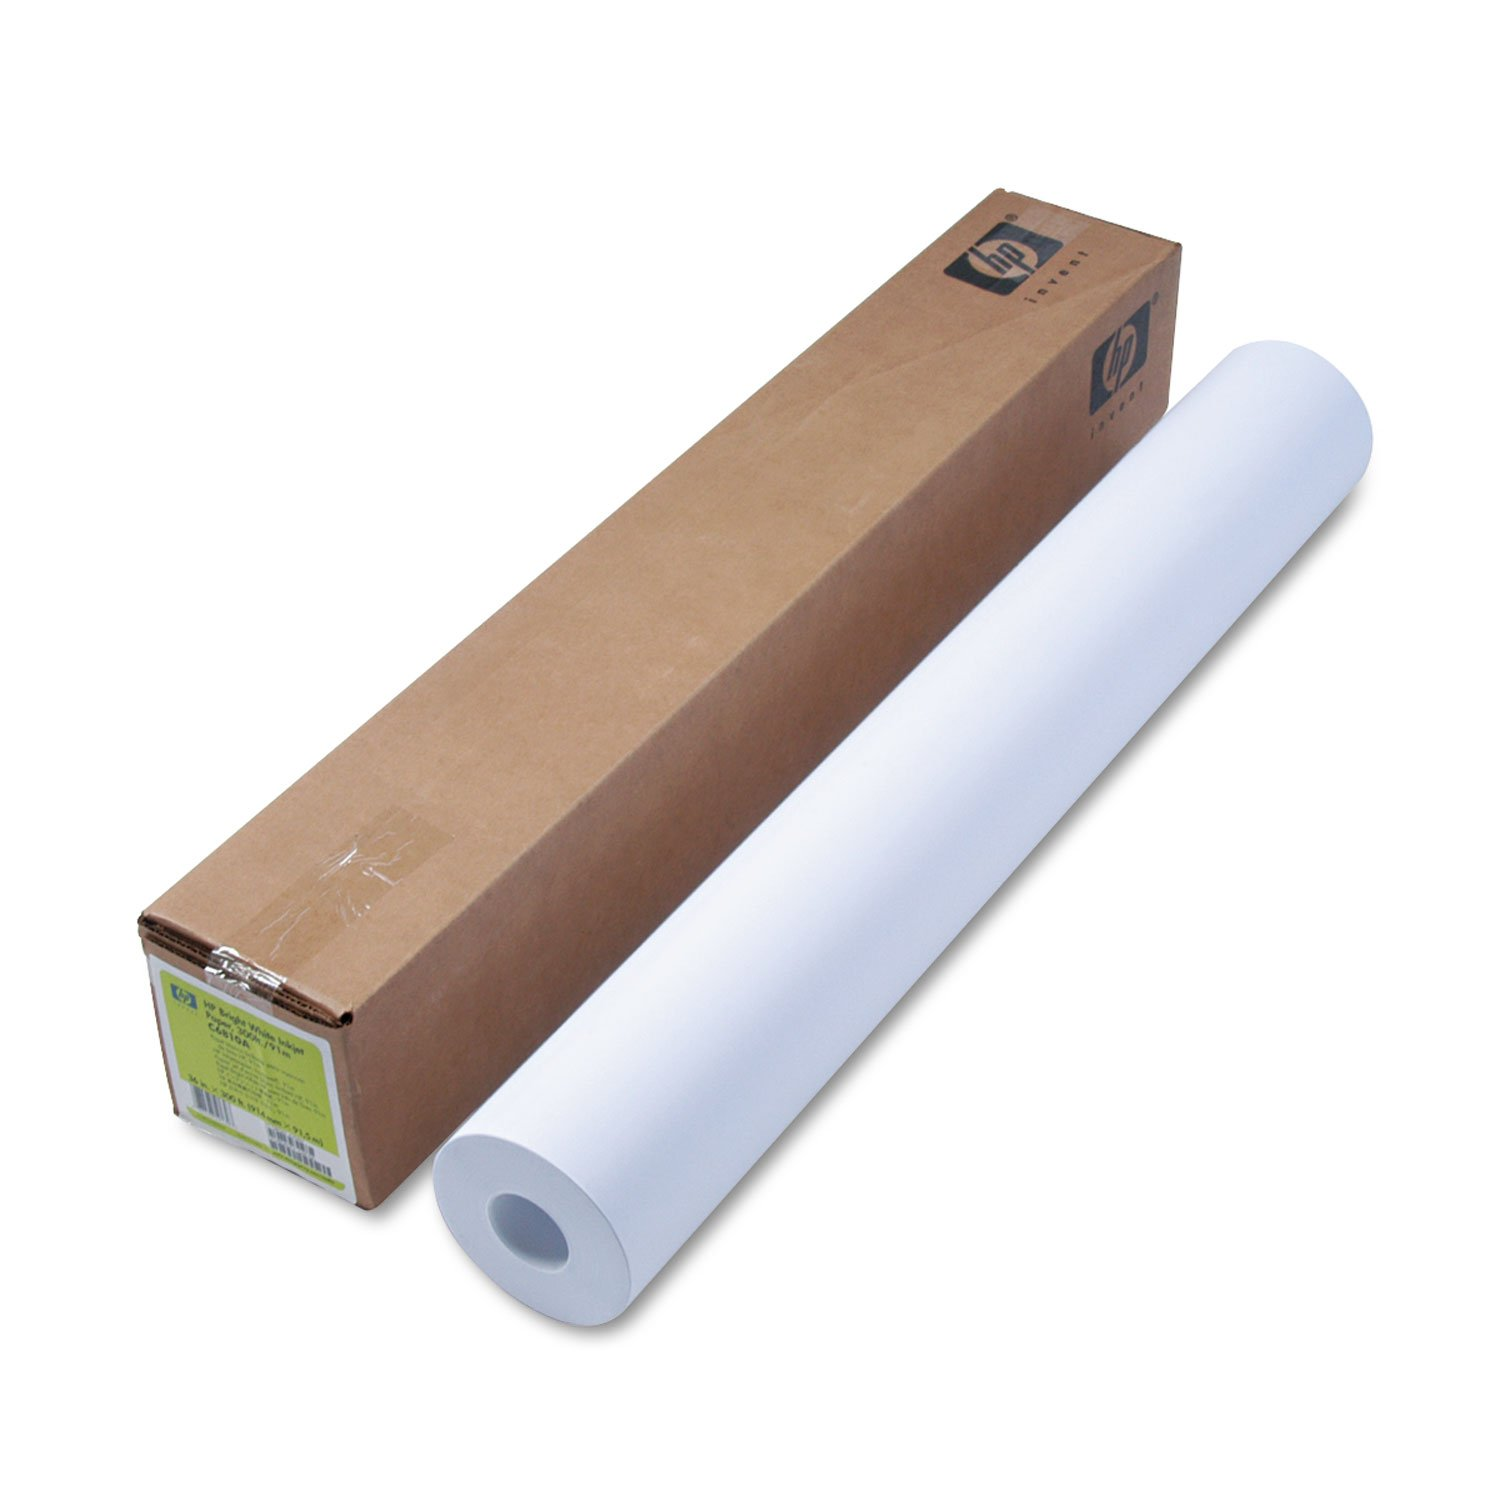 HP C6810A Inkjet Bond Paper,24 lb,36-Inch x300-Ft Roll,95 GE/108 ISO,BR WE by HP